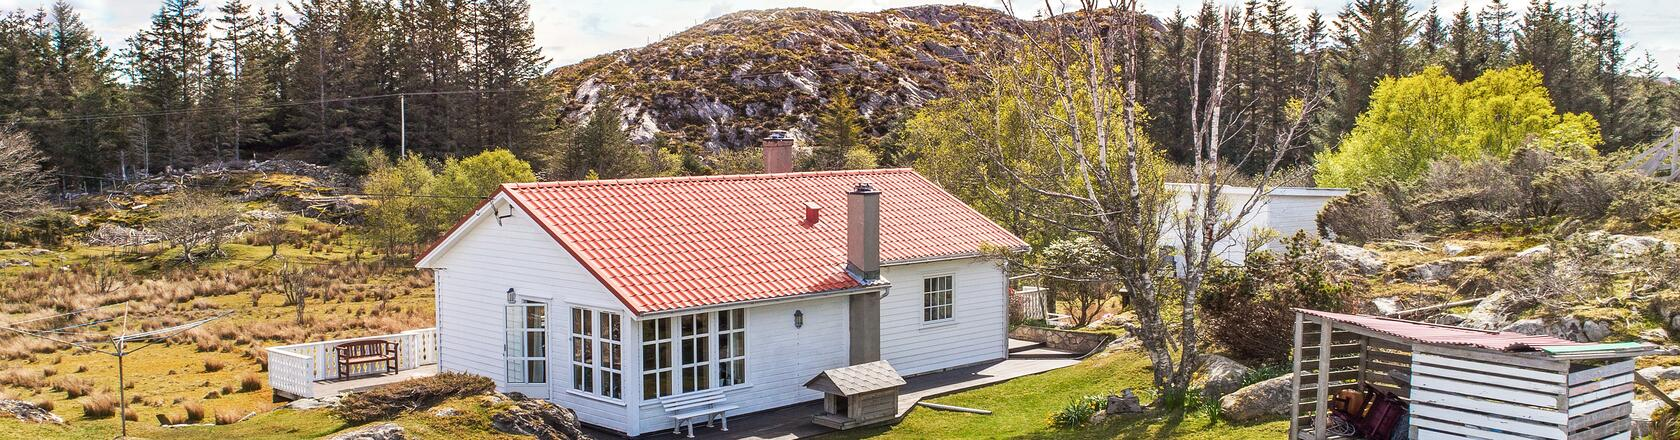 Masfjorden in Norway - Rent a holiday home  with DanCenter